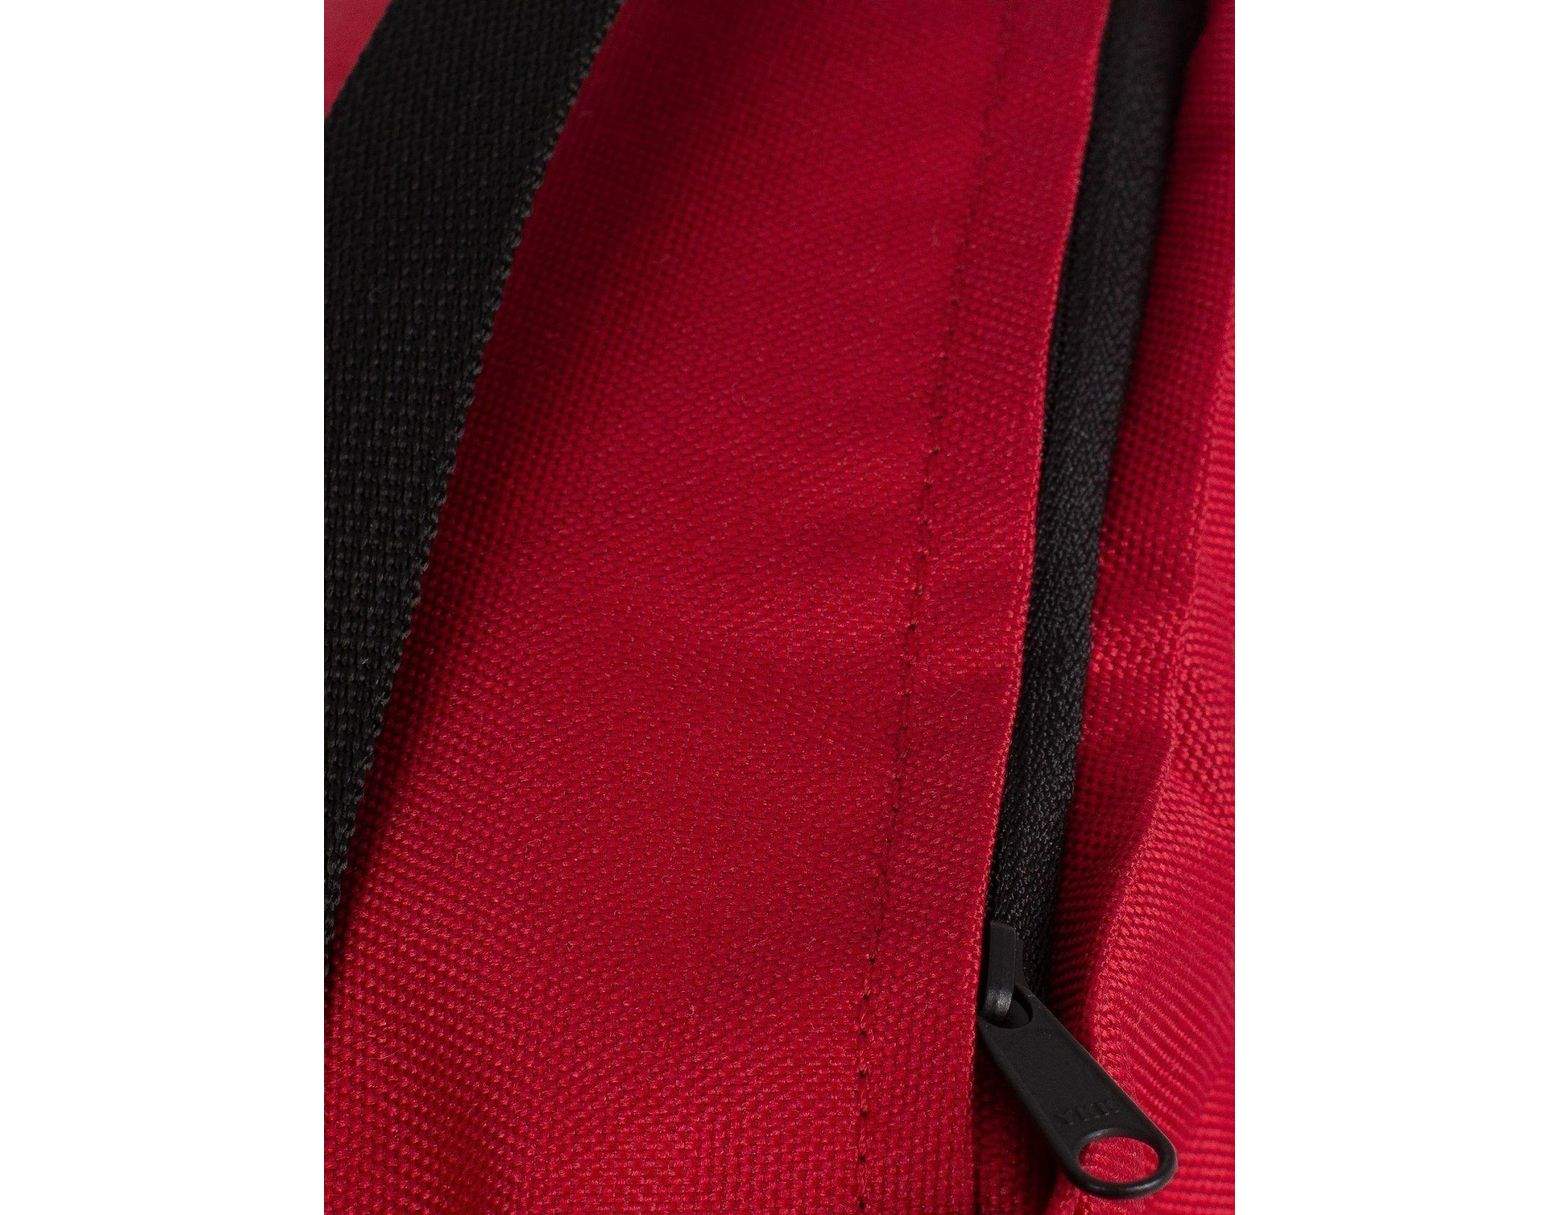 ca0ac8dbf Levi's Brilliant Red Banana Sling Bag in Red for Men - Save 19% - Lyst